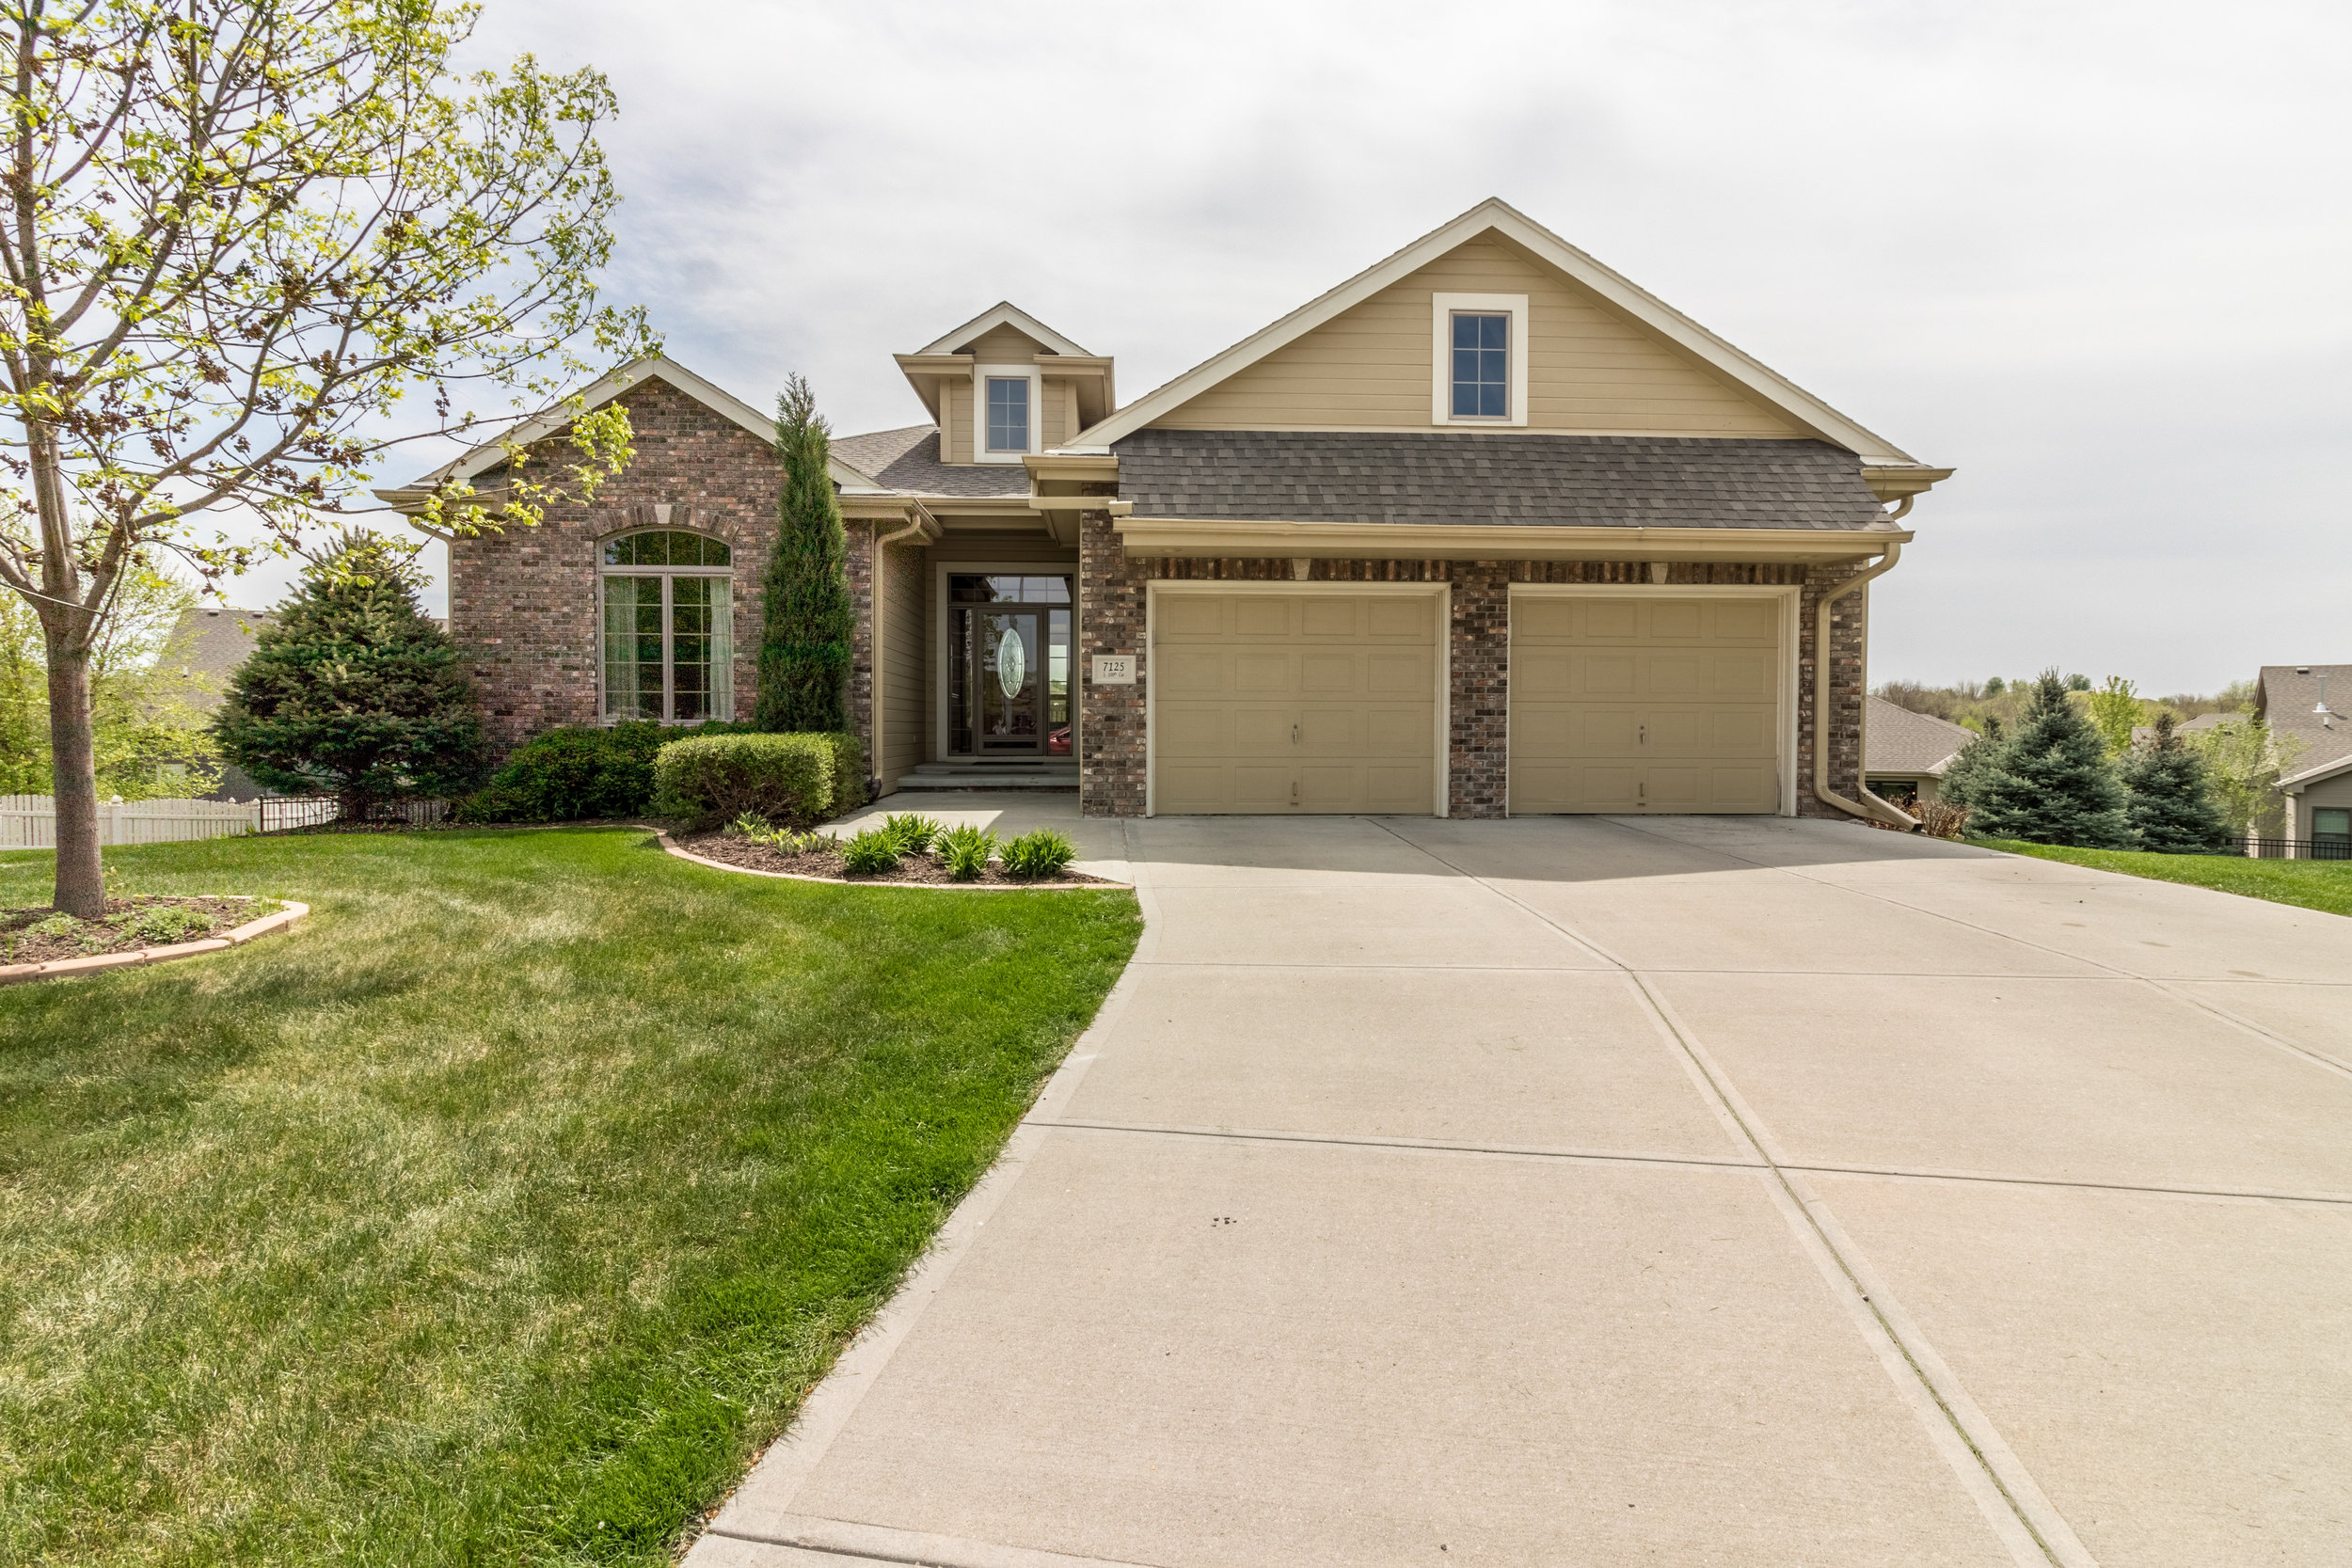 Stunning - 7125 S 100th Circle | La Vista | $359,900